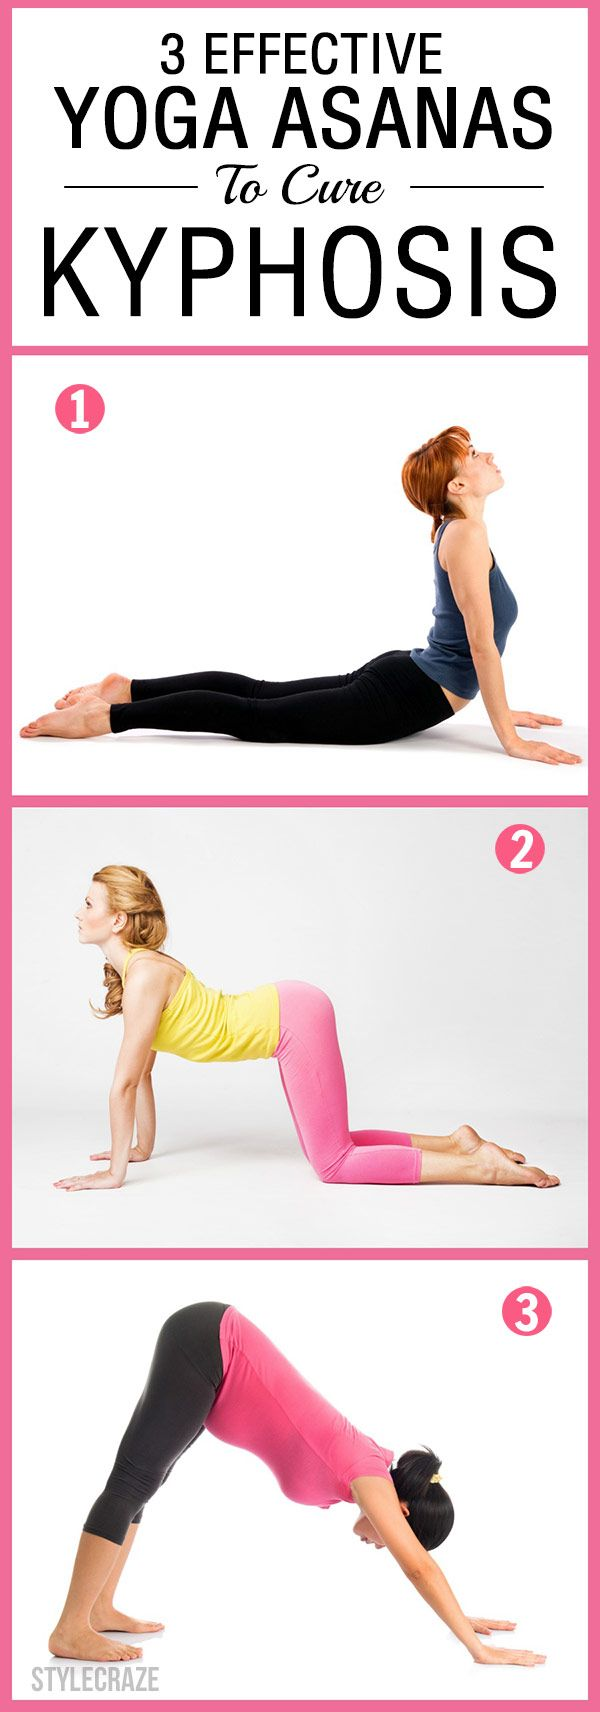 3 Effective Yoga Asanas To Cure Kyphosis recommendations